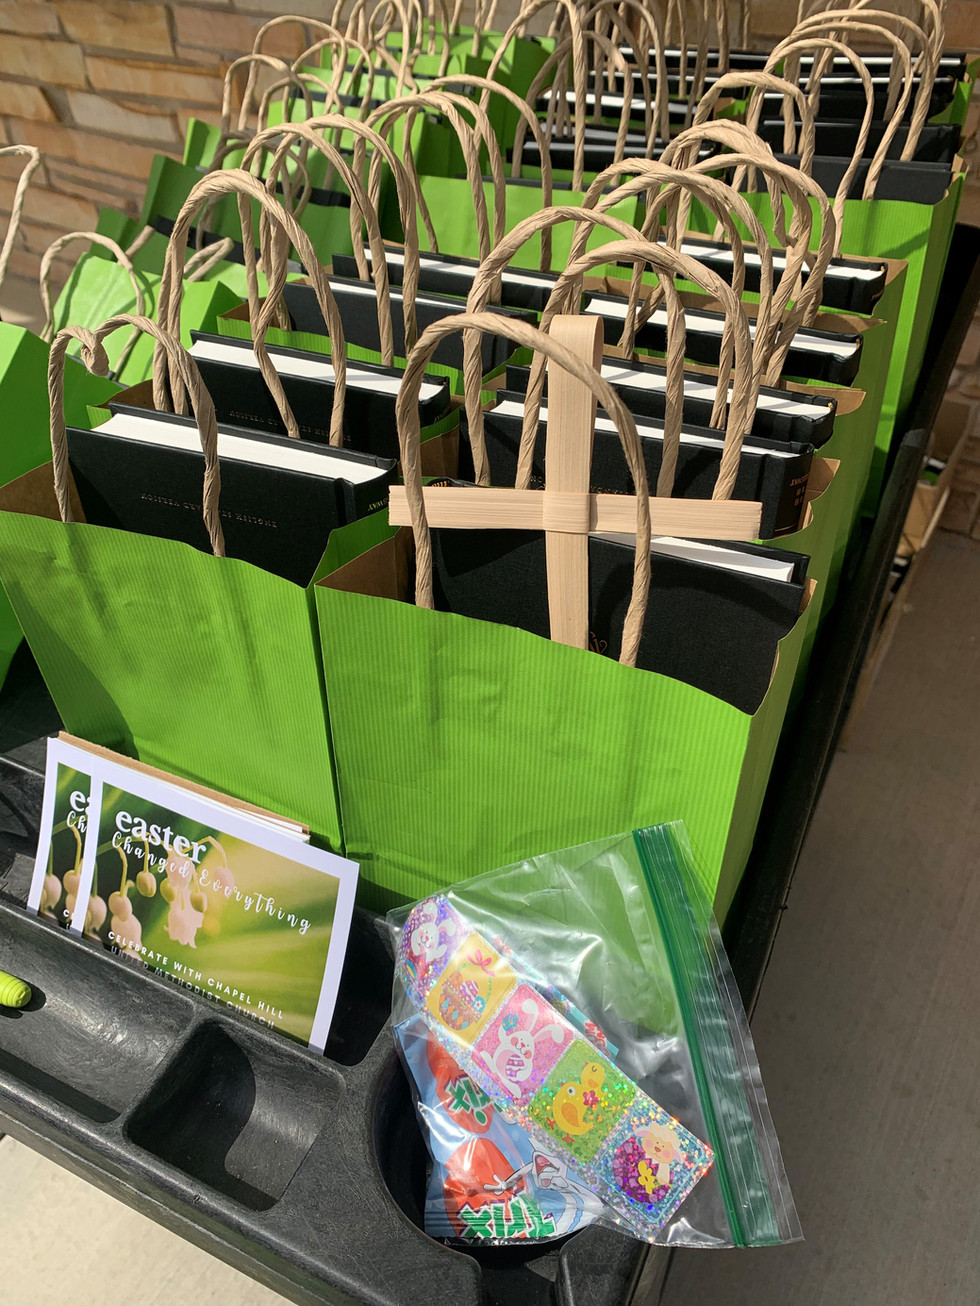 Each bag had a Bible, treats, a palm cross and an invitation to Holy Week/Easter services.